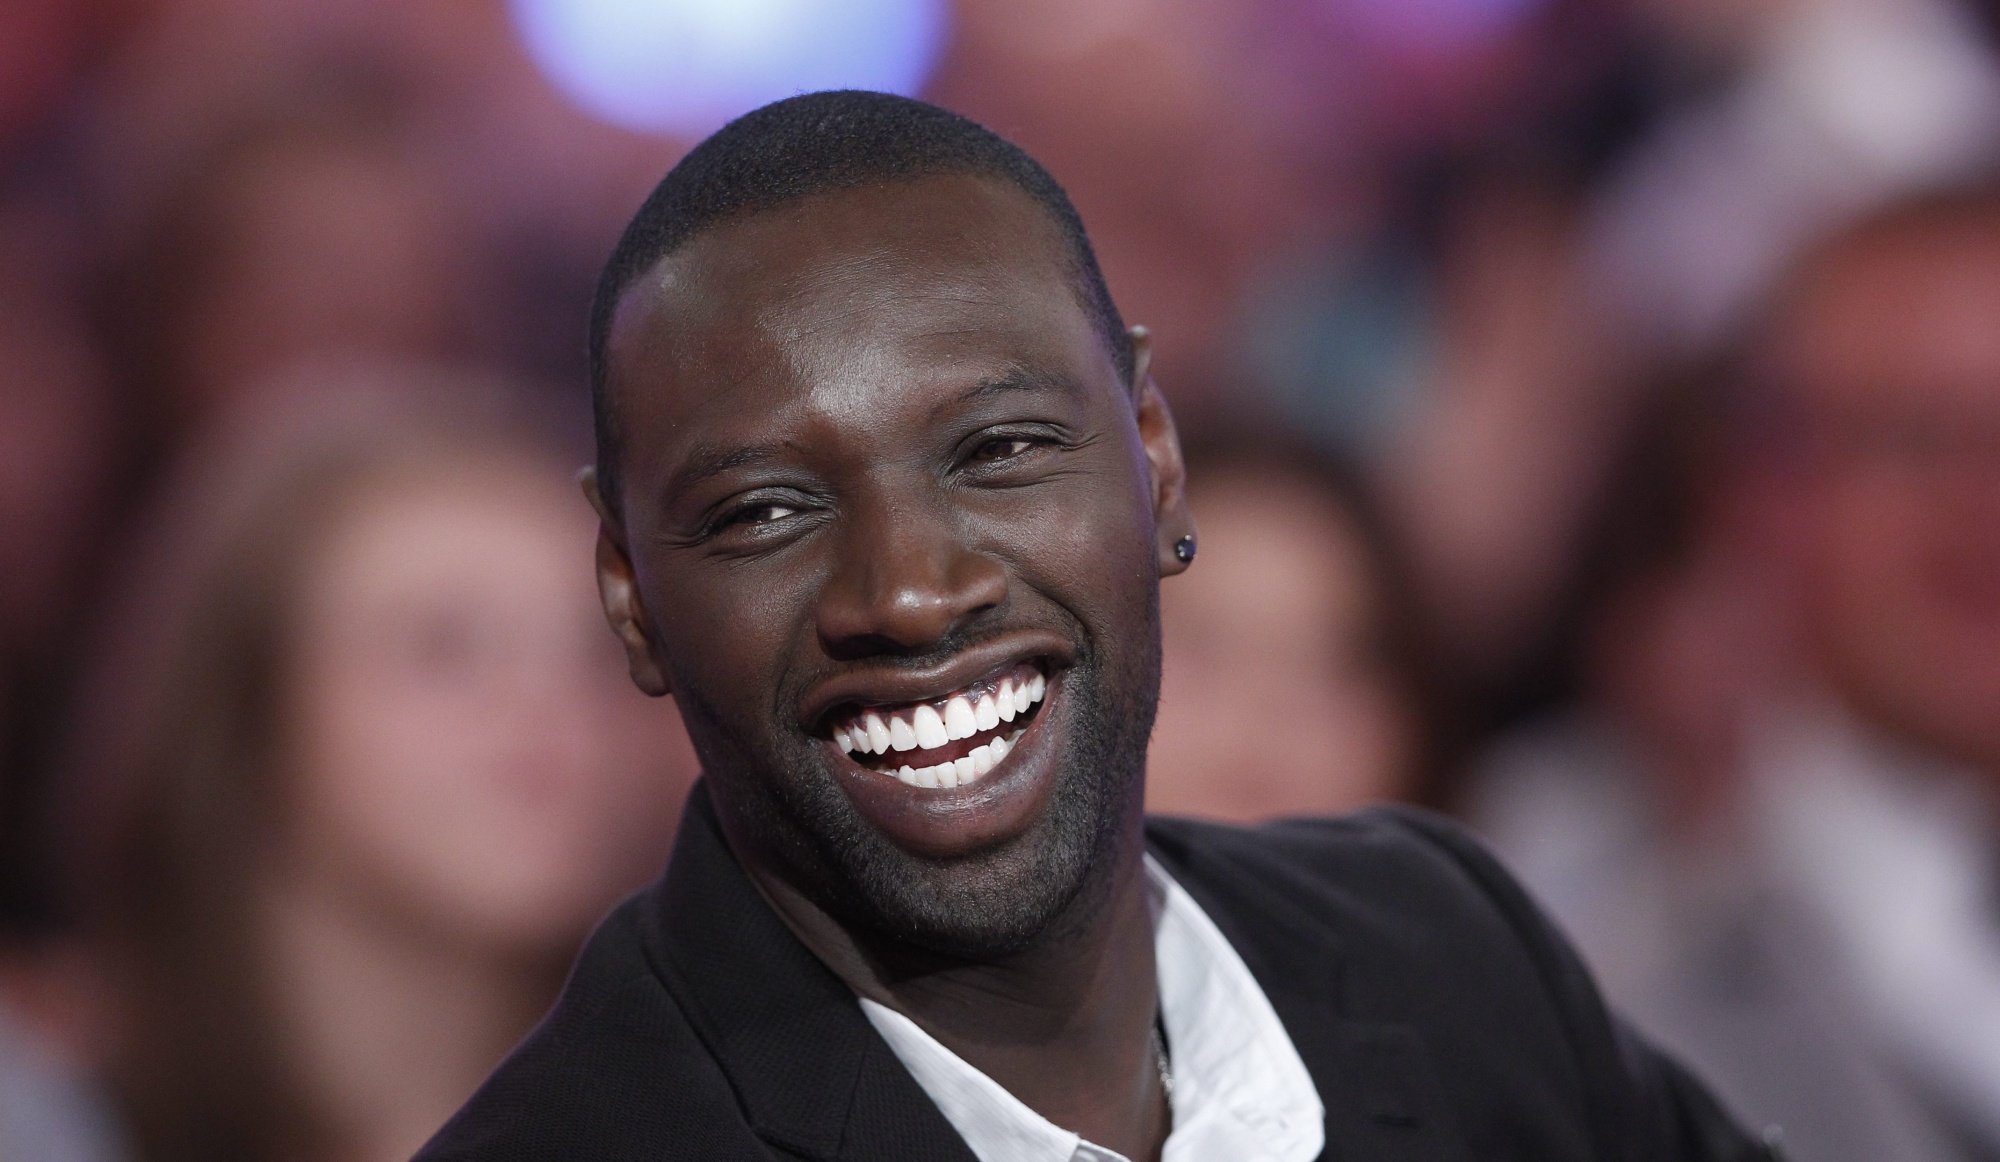 Omar sy dans x men l 39 intouchable a conquis hollywood for Dans x